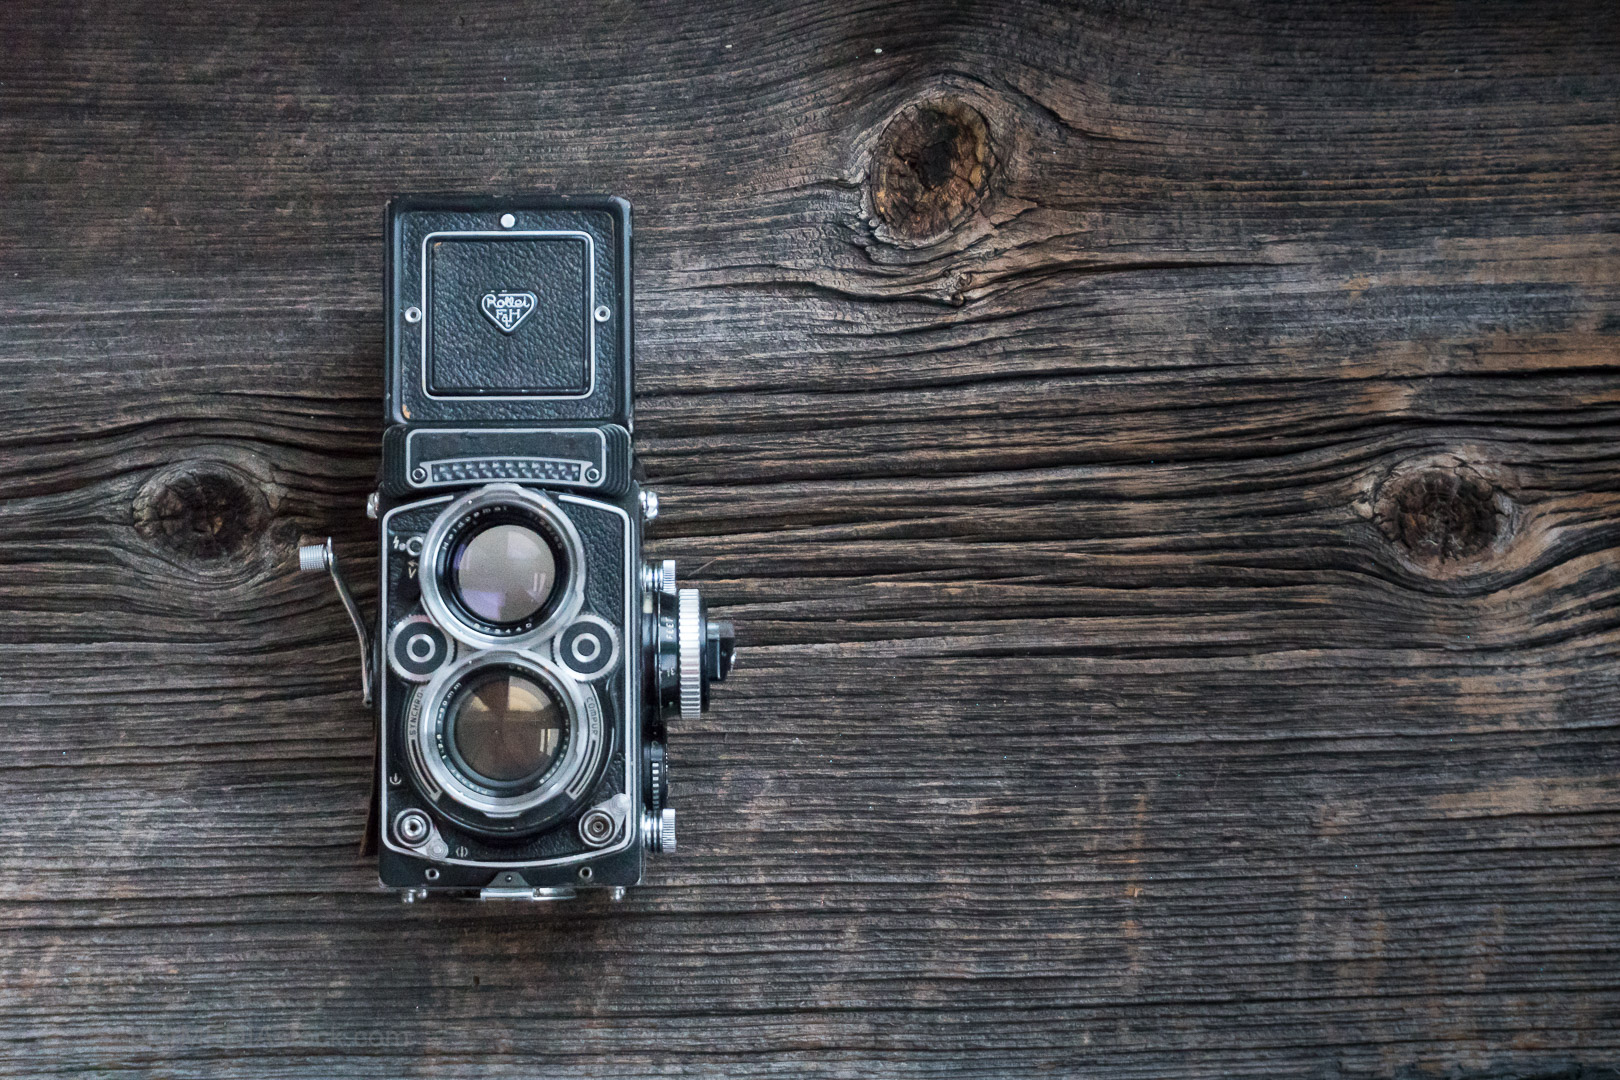 VIntage Rolleiflex medium format film camera photographed on barn board.